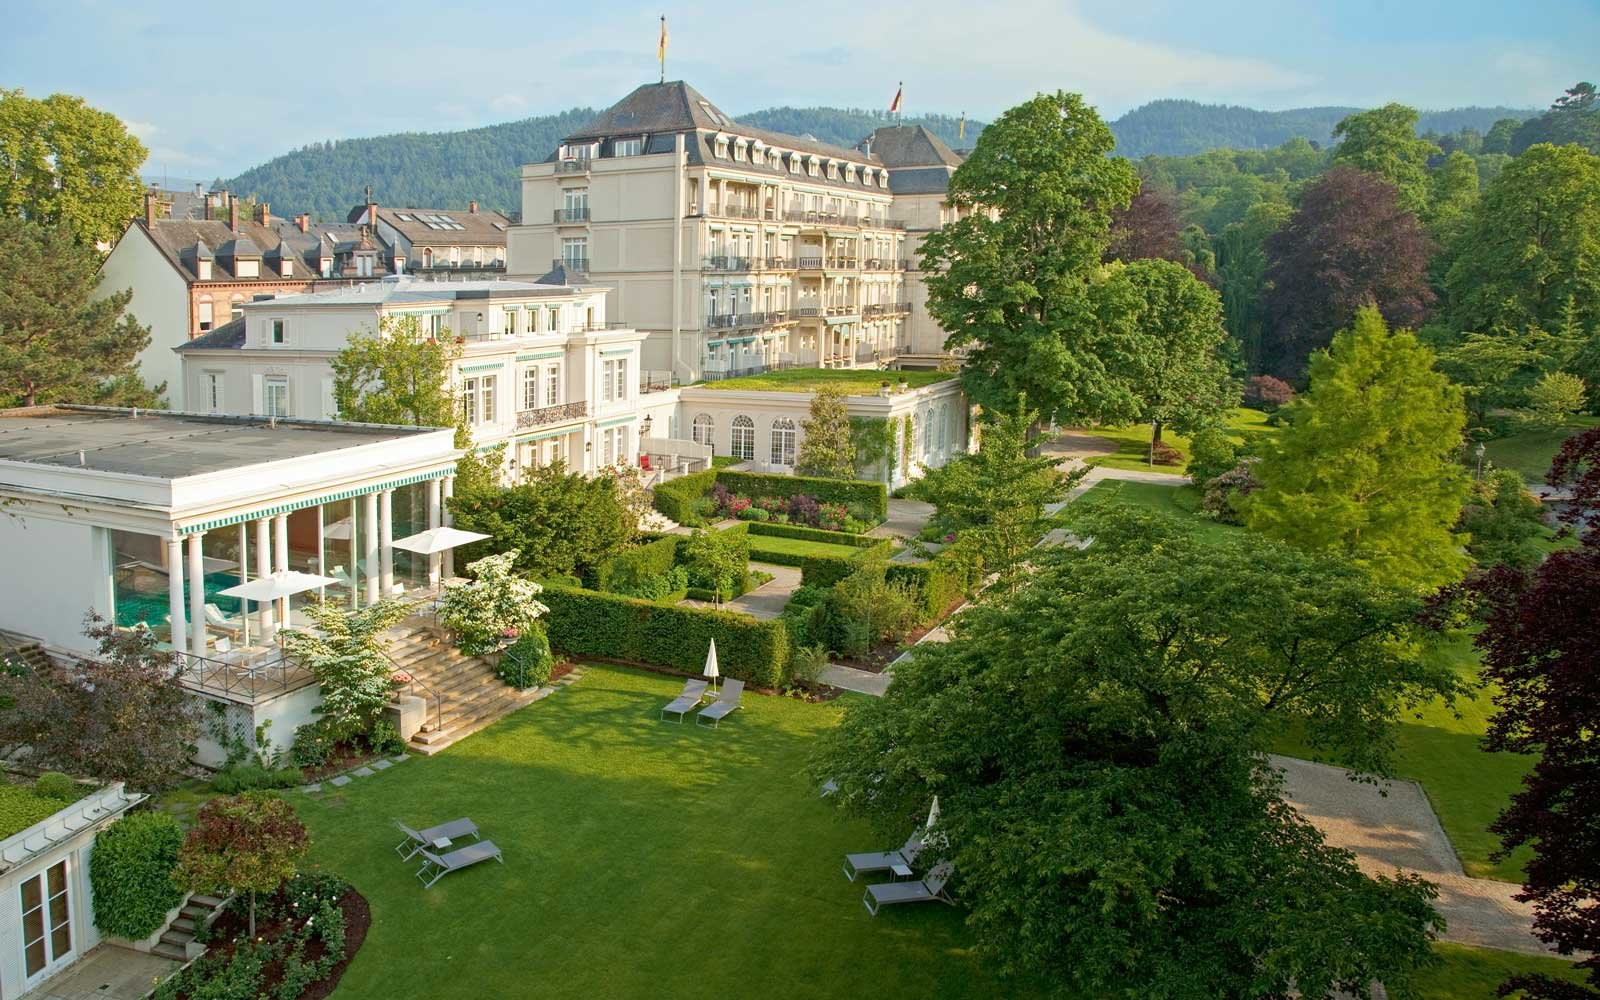 Brenners Park-Hotel & Spa in Germany's Black Forest